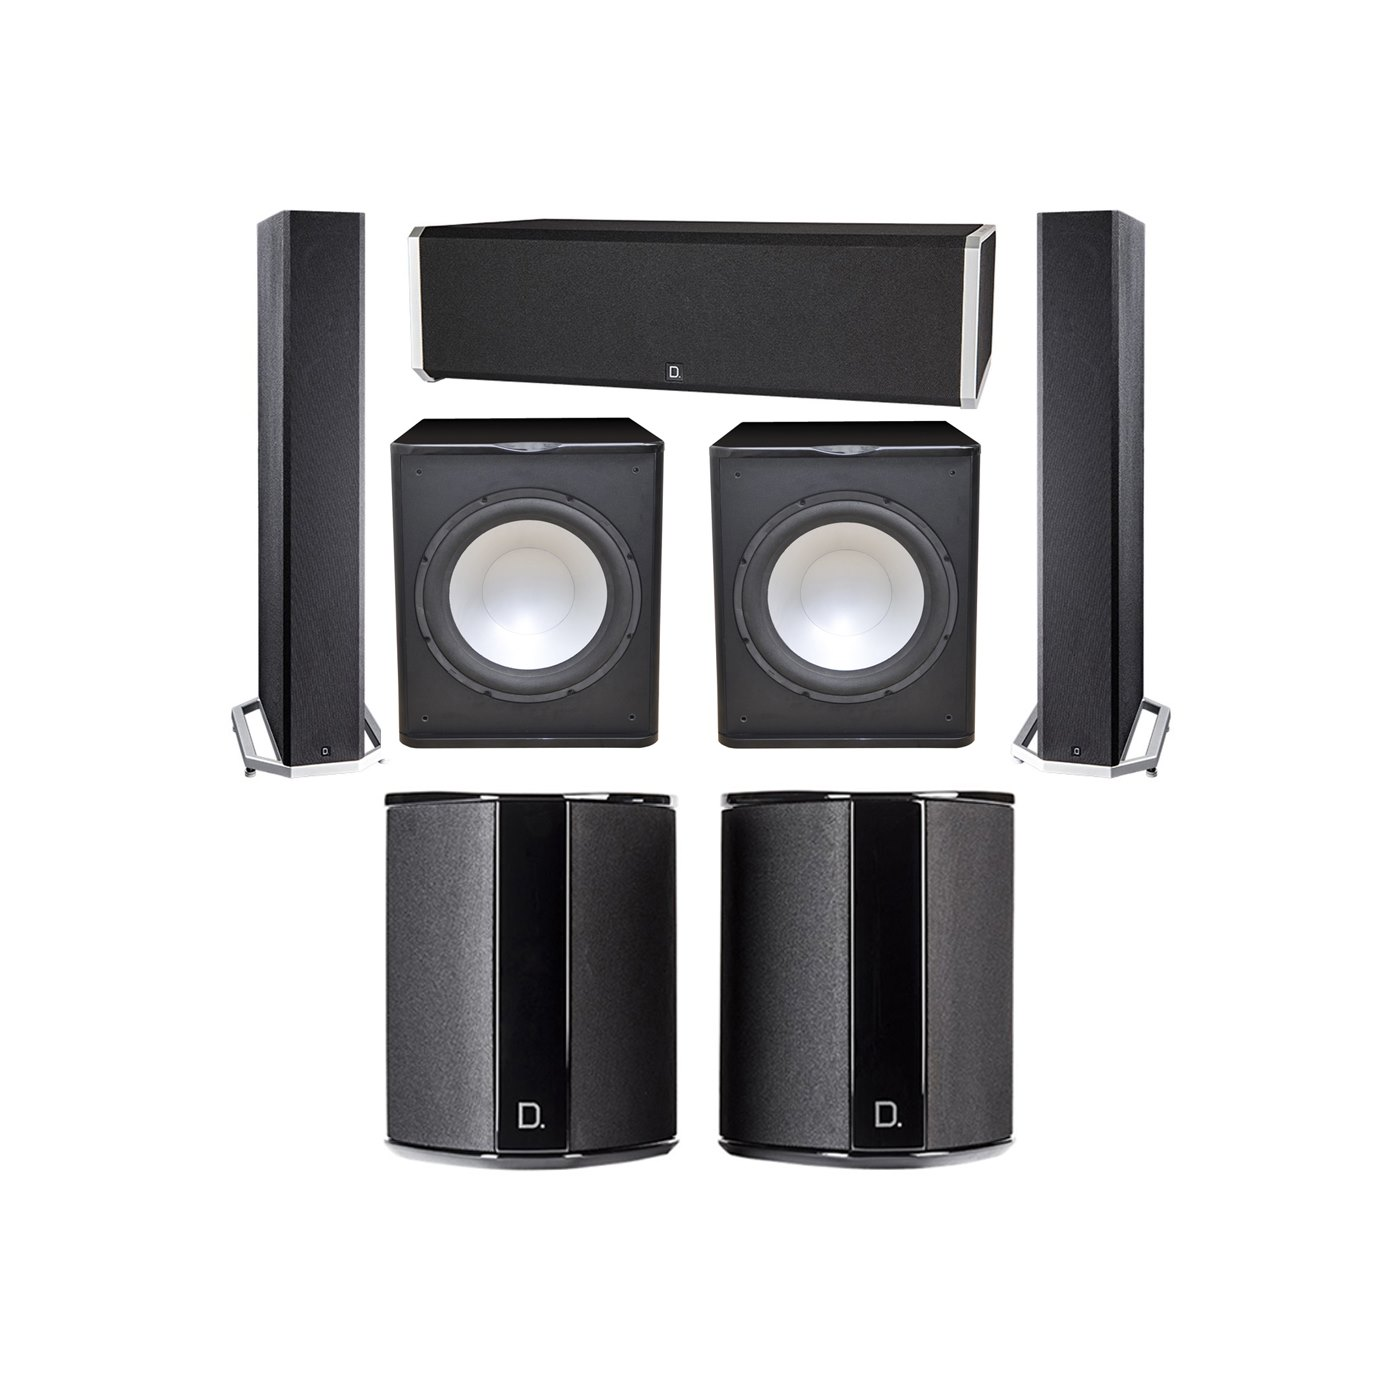 Definitive Technology 5.2 System with 2 BP9040 Tower Speakers, 1 CS9040 Center Channel Speaker, 2 SR9040 Surround Speaker, 2 Premier Acoustic PA-150 Subwoofer